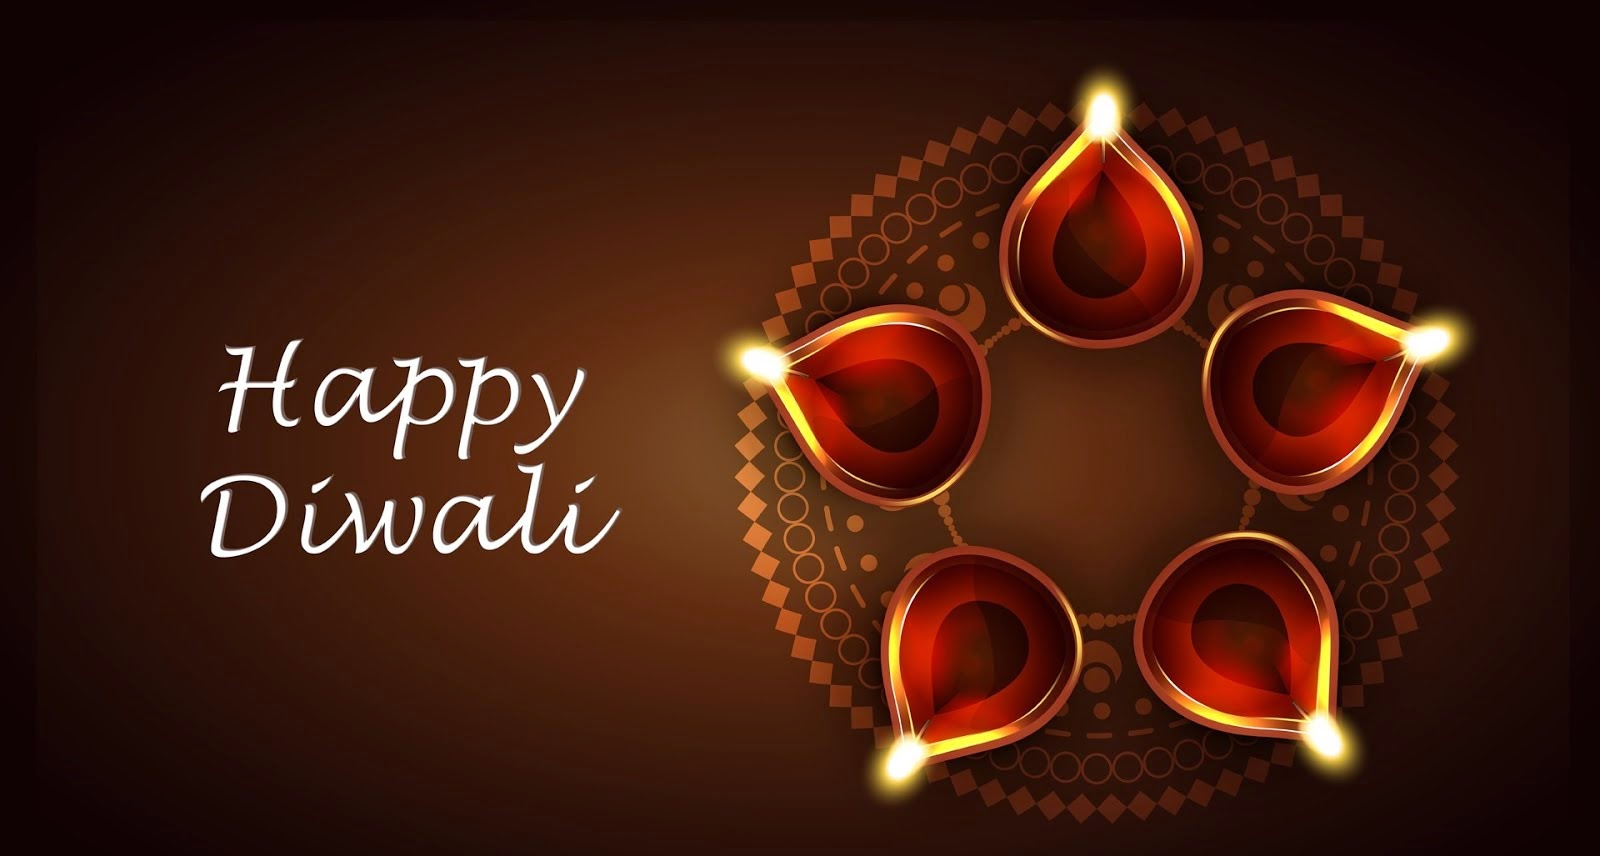 Happy diwali 2018 images wishes messages quotes happy diwali wallpapers for desktop mobile m4hsunfo